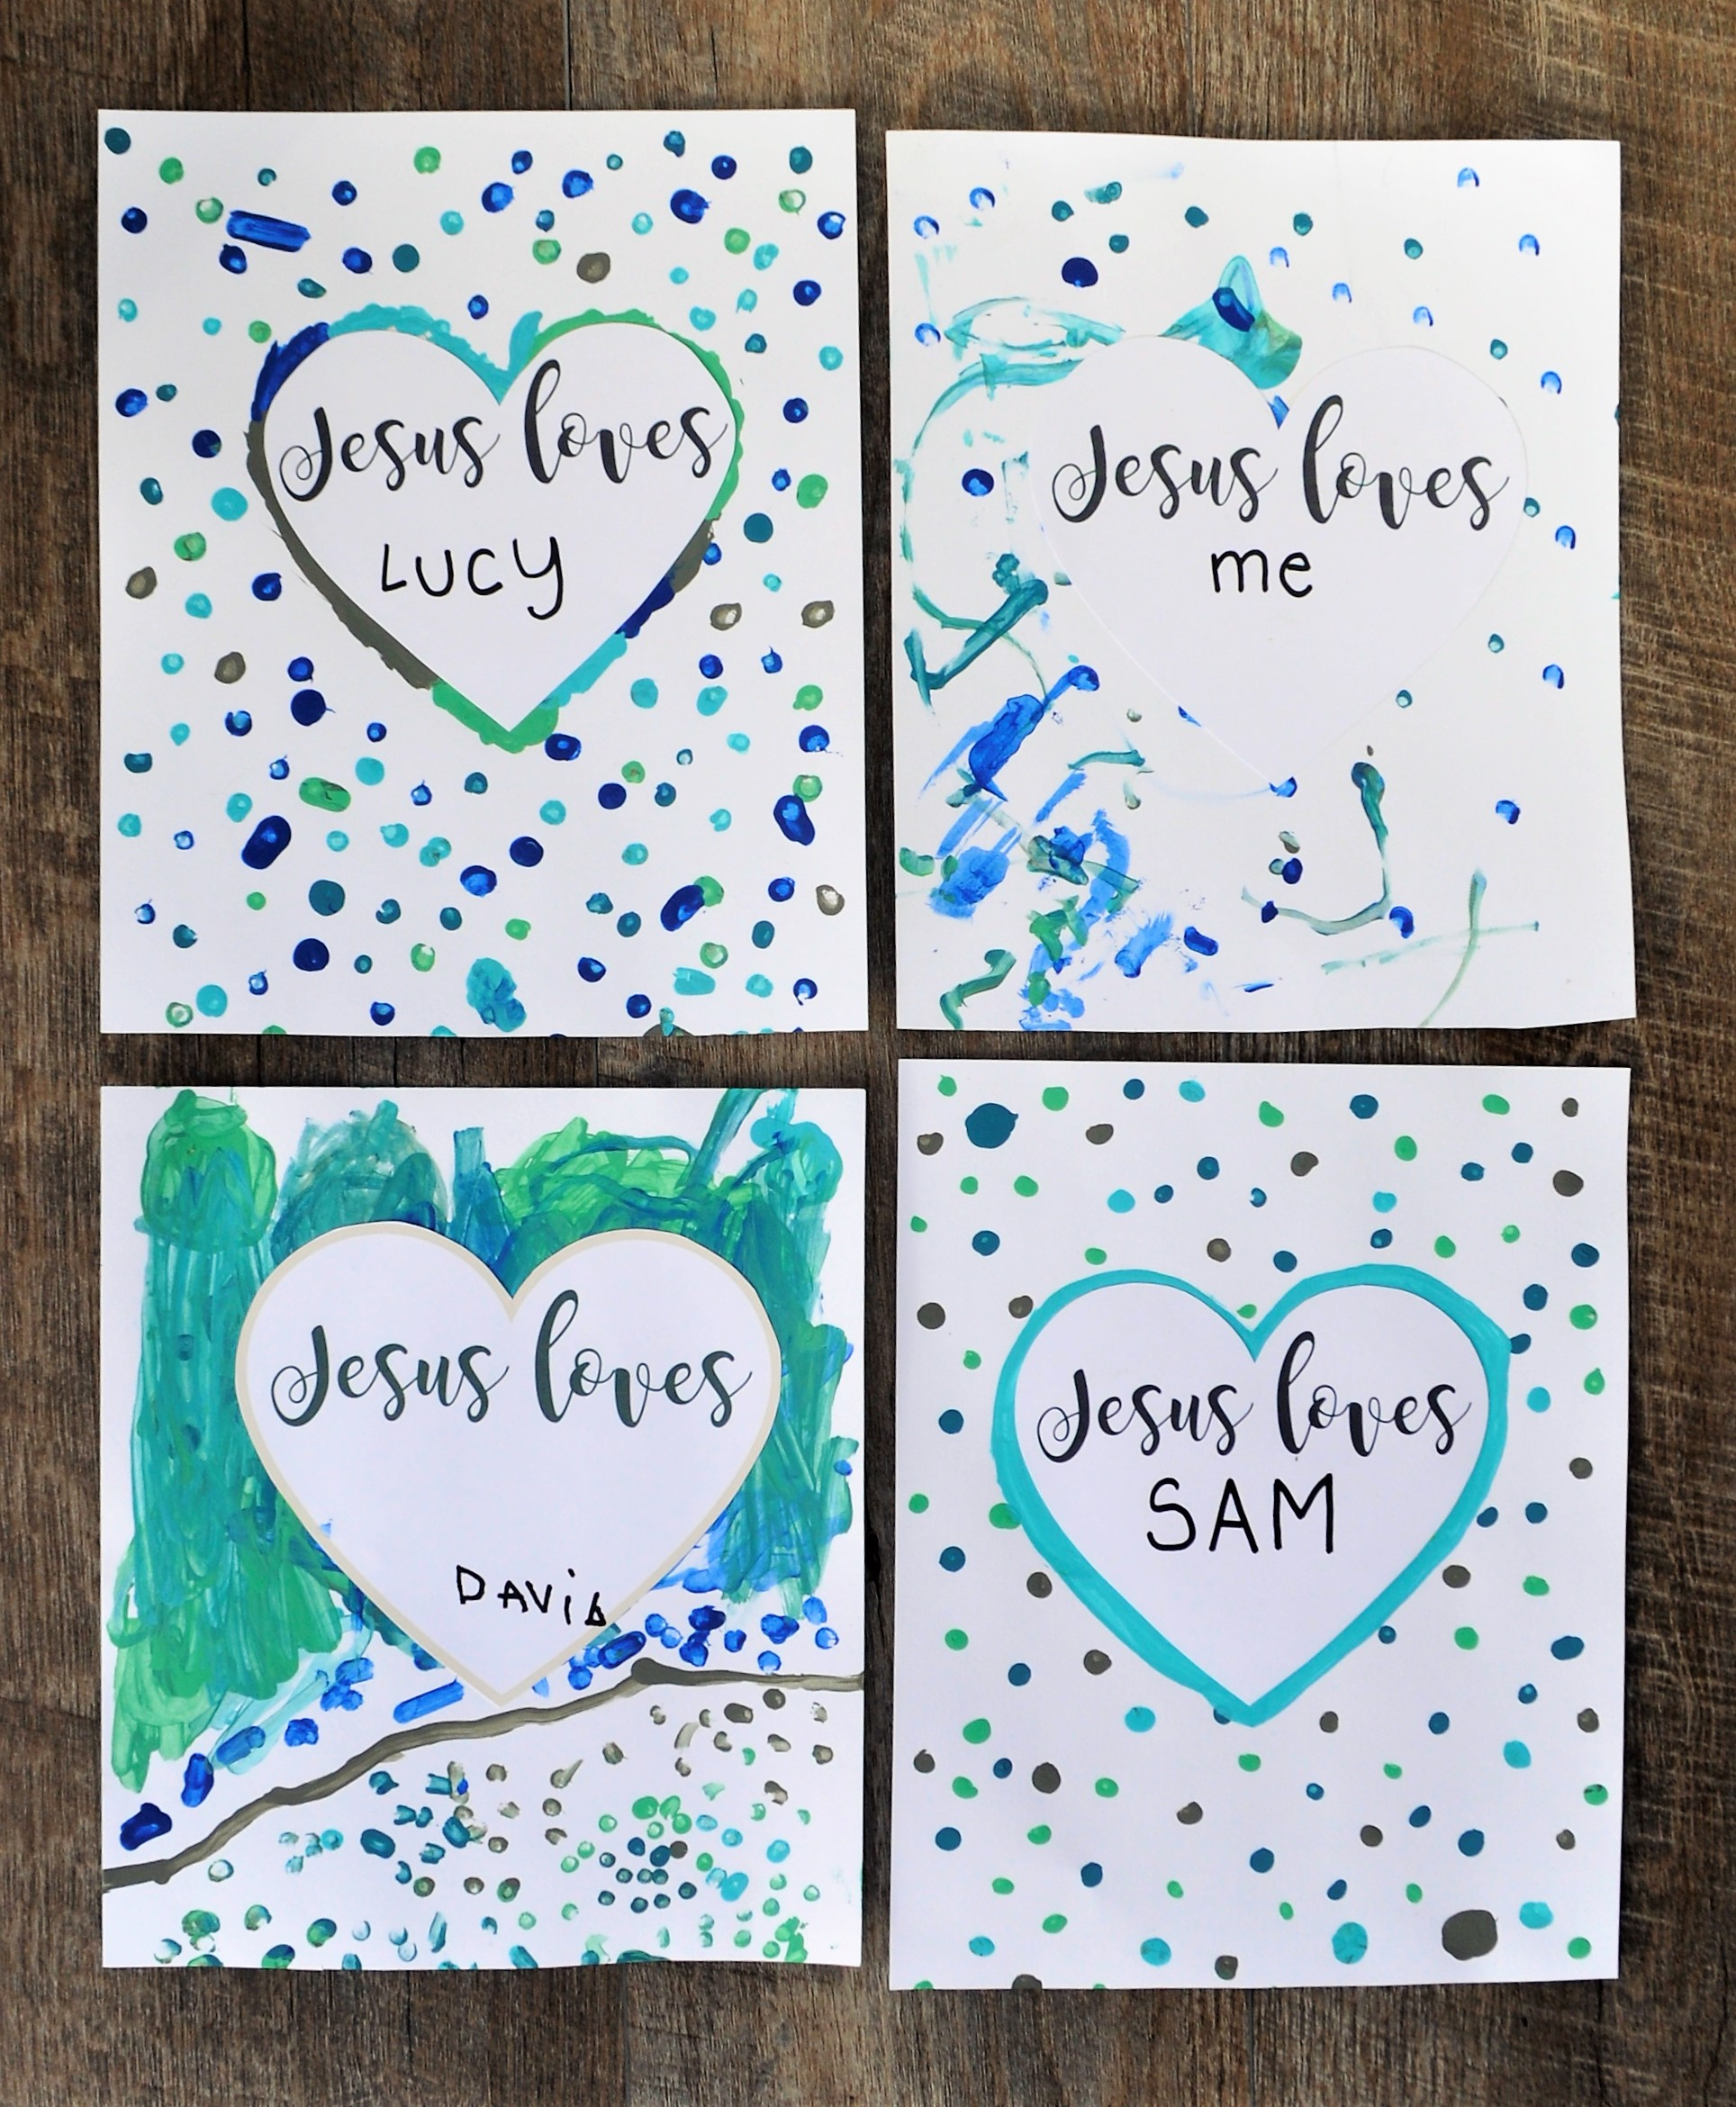 Children's Catechism - Do you have a soul? Jesus Loves Me Craft